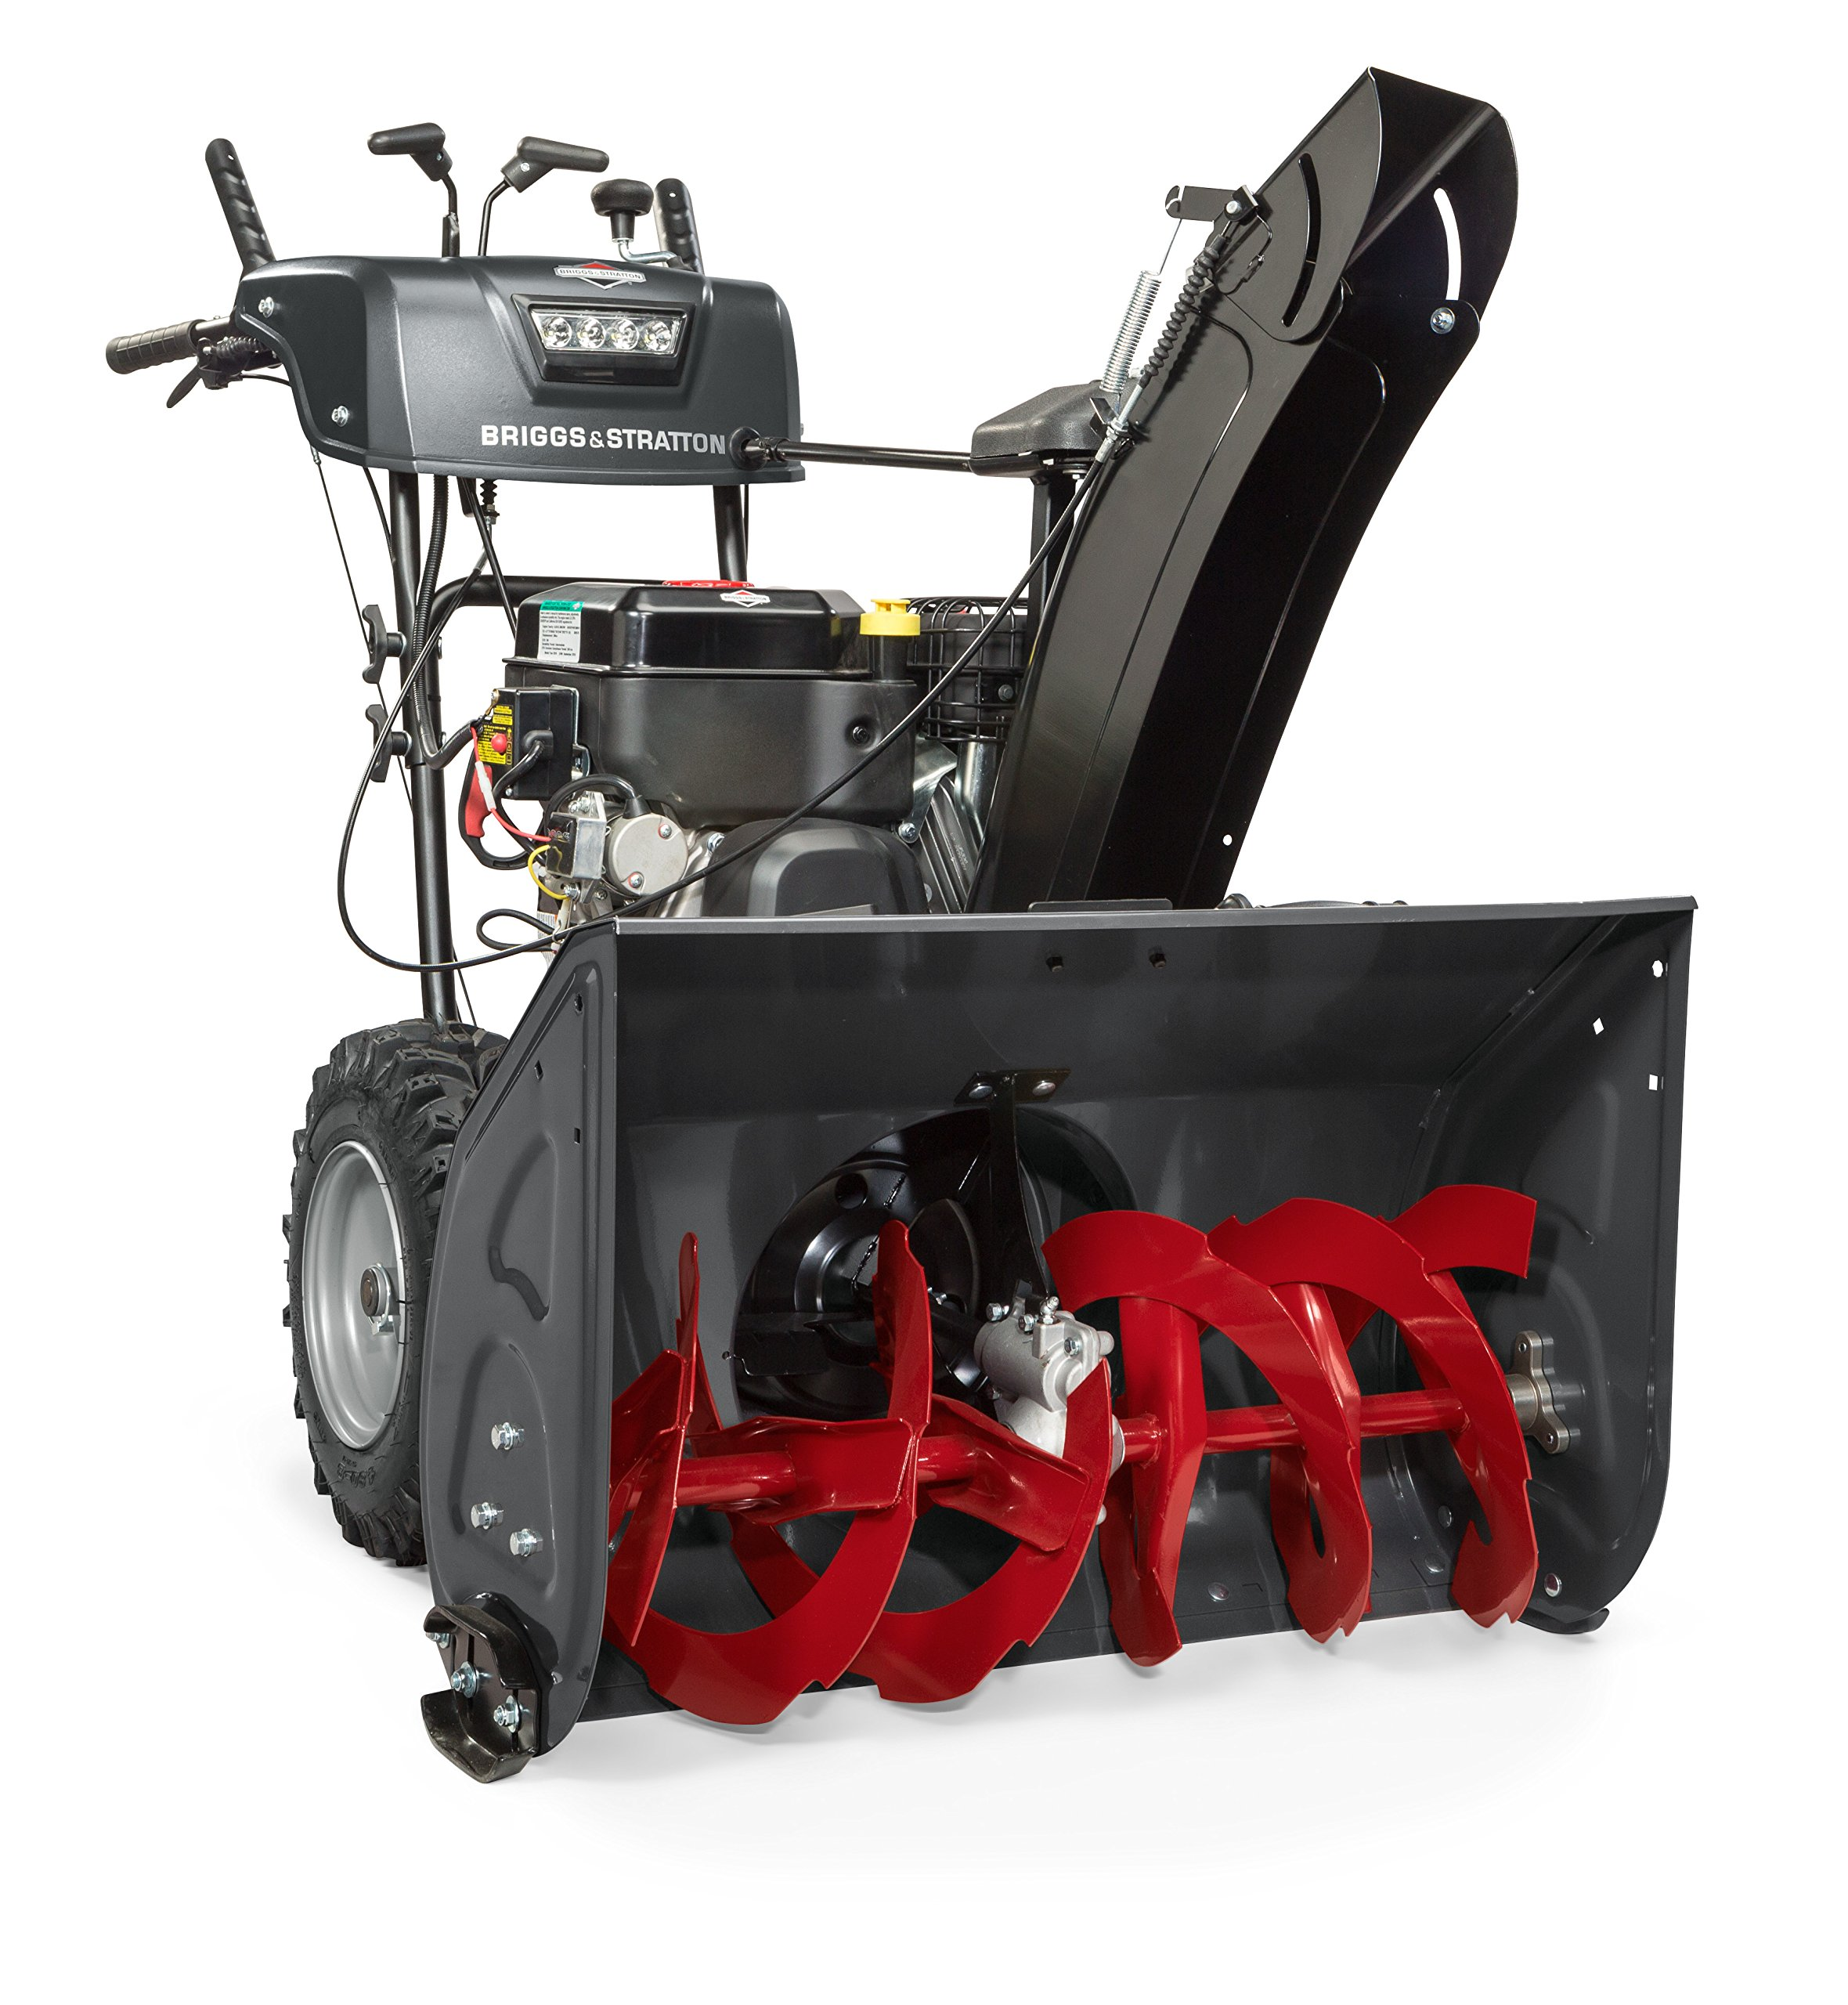 Briggs & Stratton 1530MDS Dual Stage Snowthrower Snow Thrower, 306cc by Briggs & Stratton (Image #1)